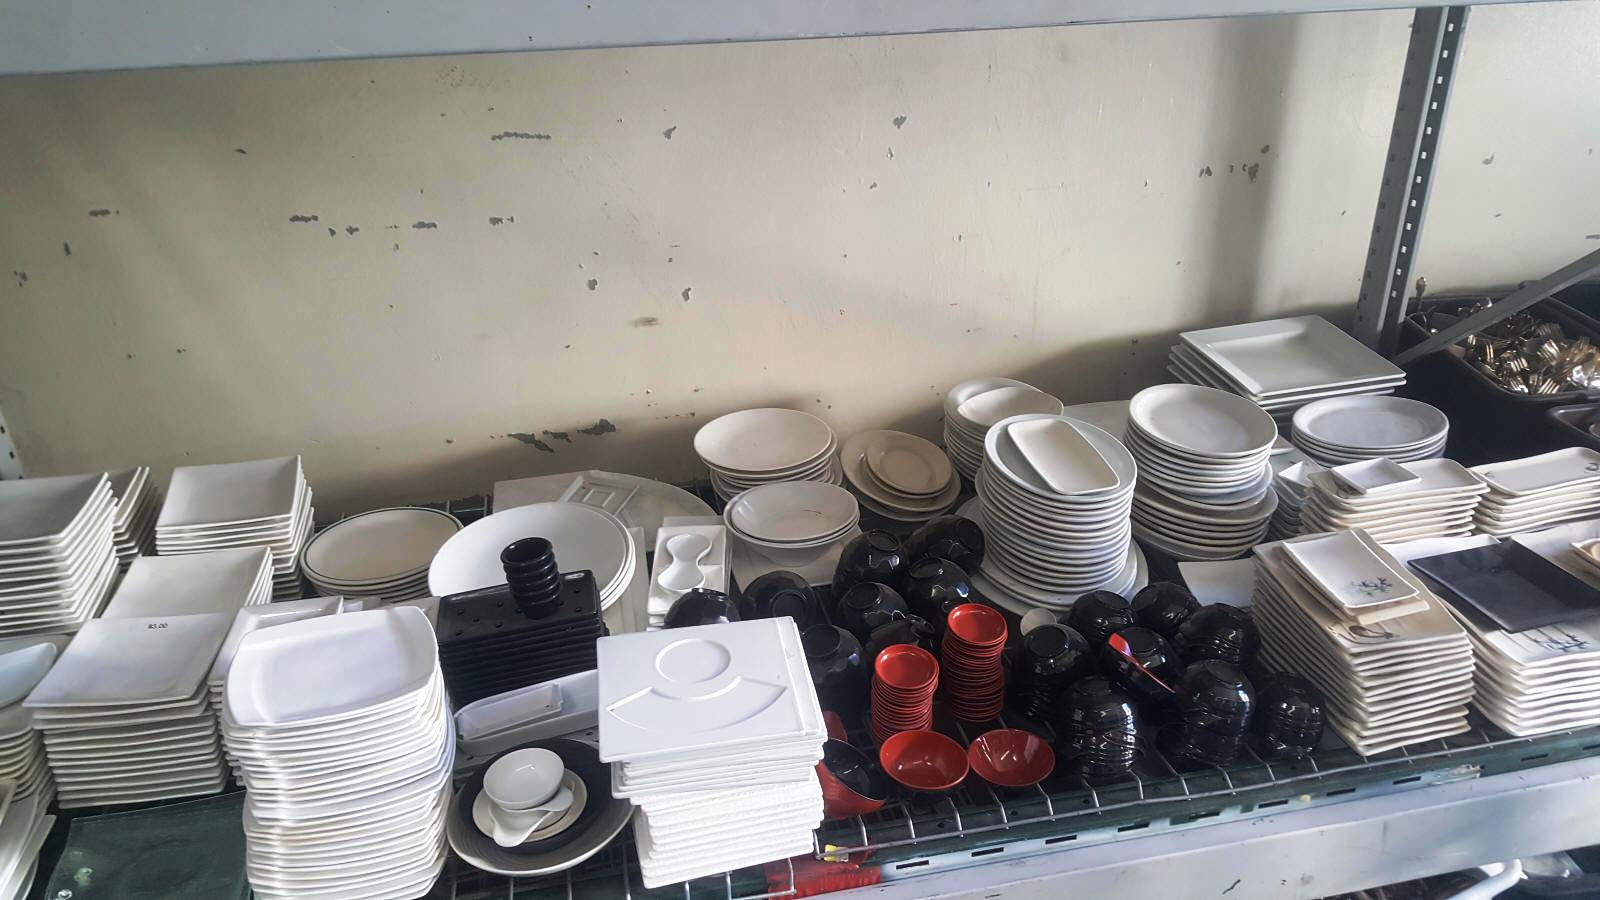 Uncategorized Used Commercial Kitchen Appliances For Sale used restaurant equipment commercial cups glasses dishes plates equipment